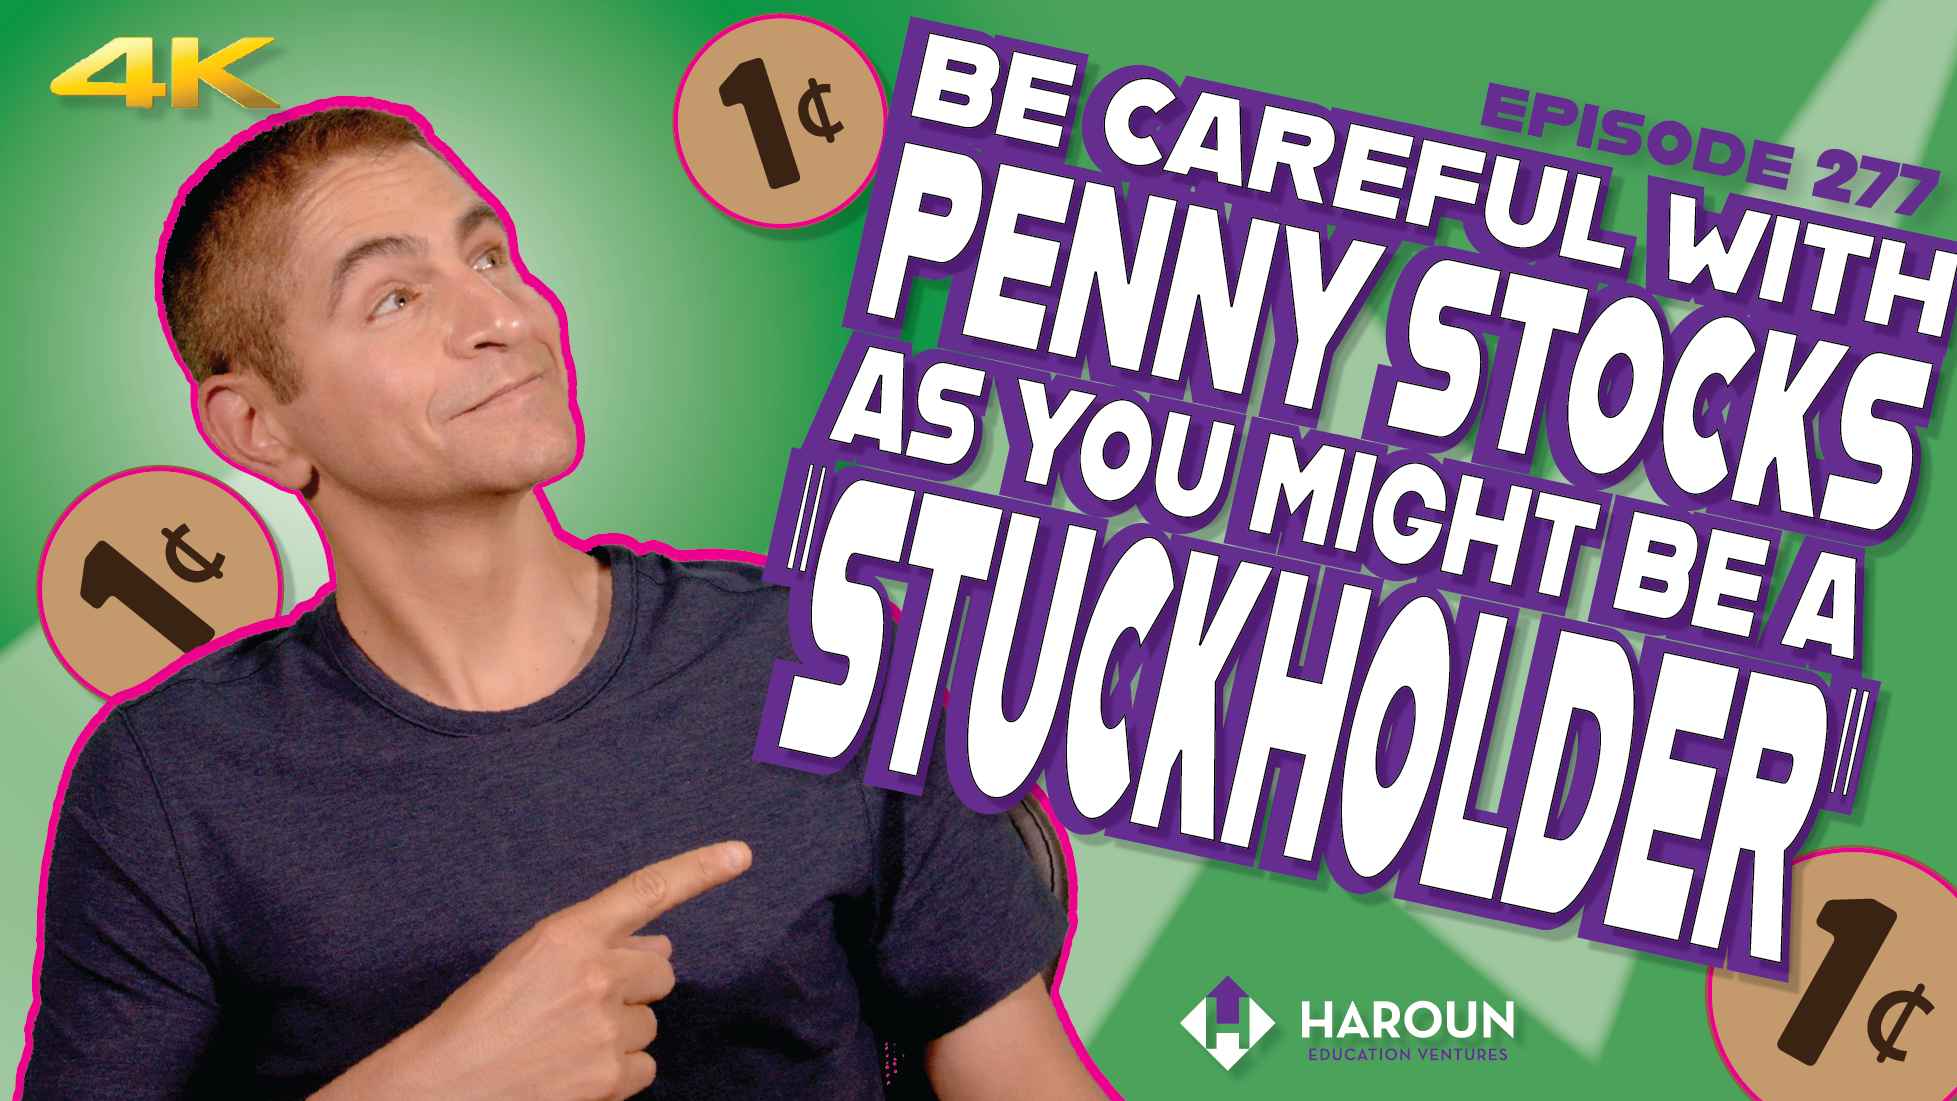 VLOG_277_5_4_2019_ Be Careful With Penny Stocks ( as You Might Be a Stuckholder).png